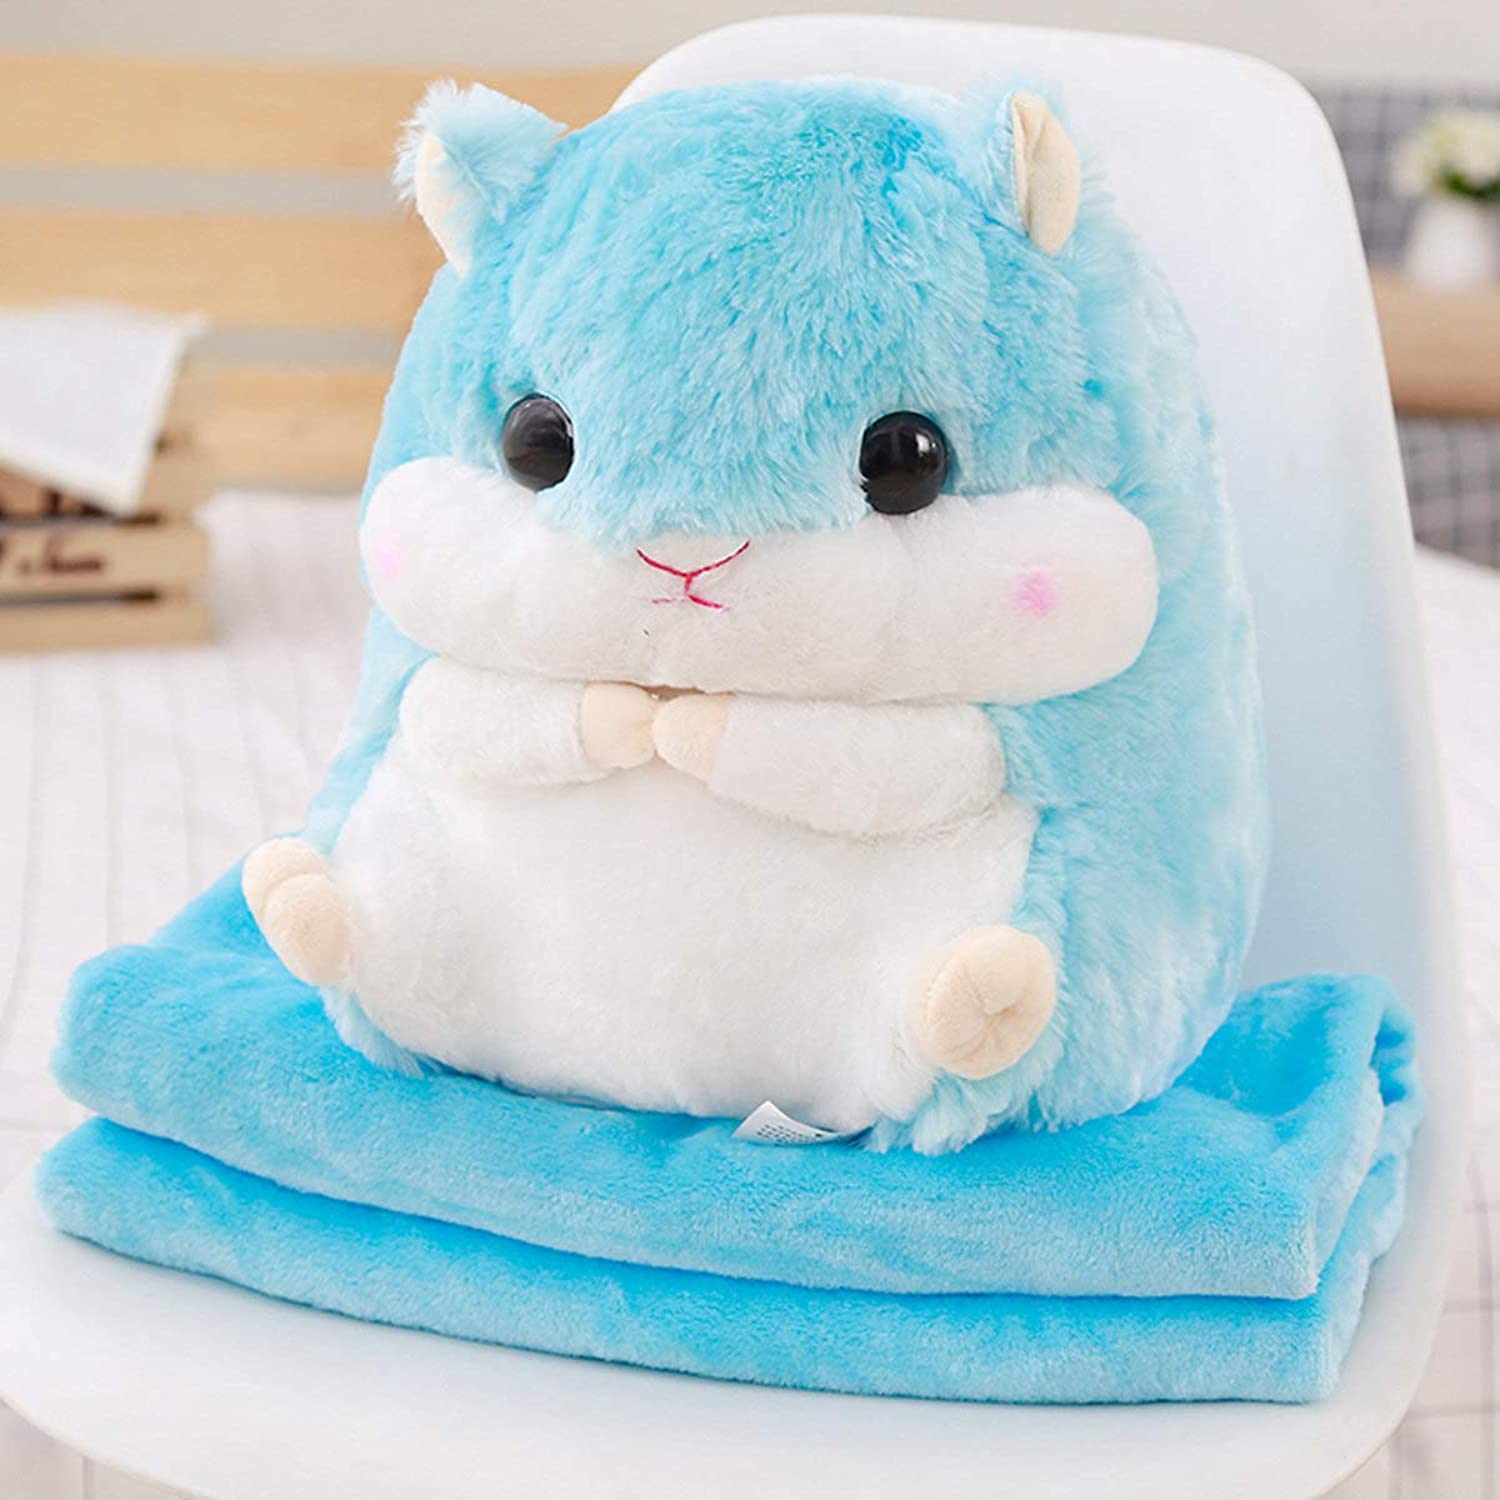 DONGER Hamster Doll Doll Hand Warmer Pillow Quilt DualUse Big Blanket Toy Hamster Birthday Gift, bluee